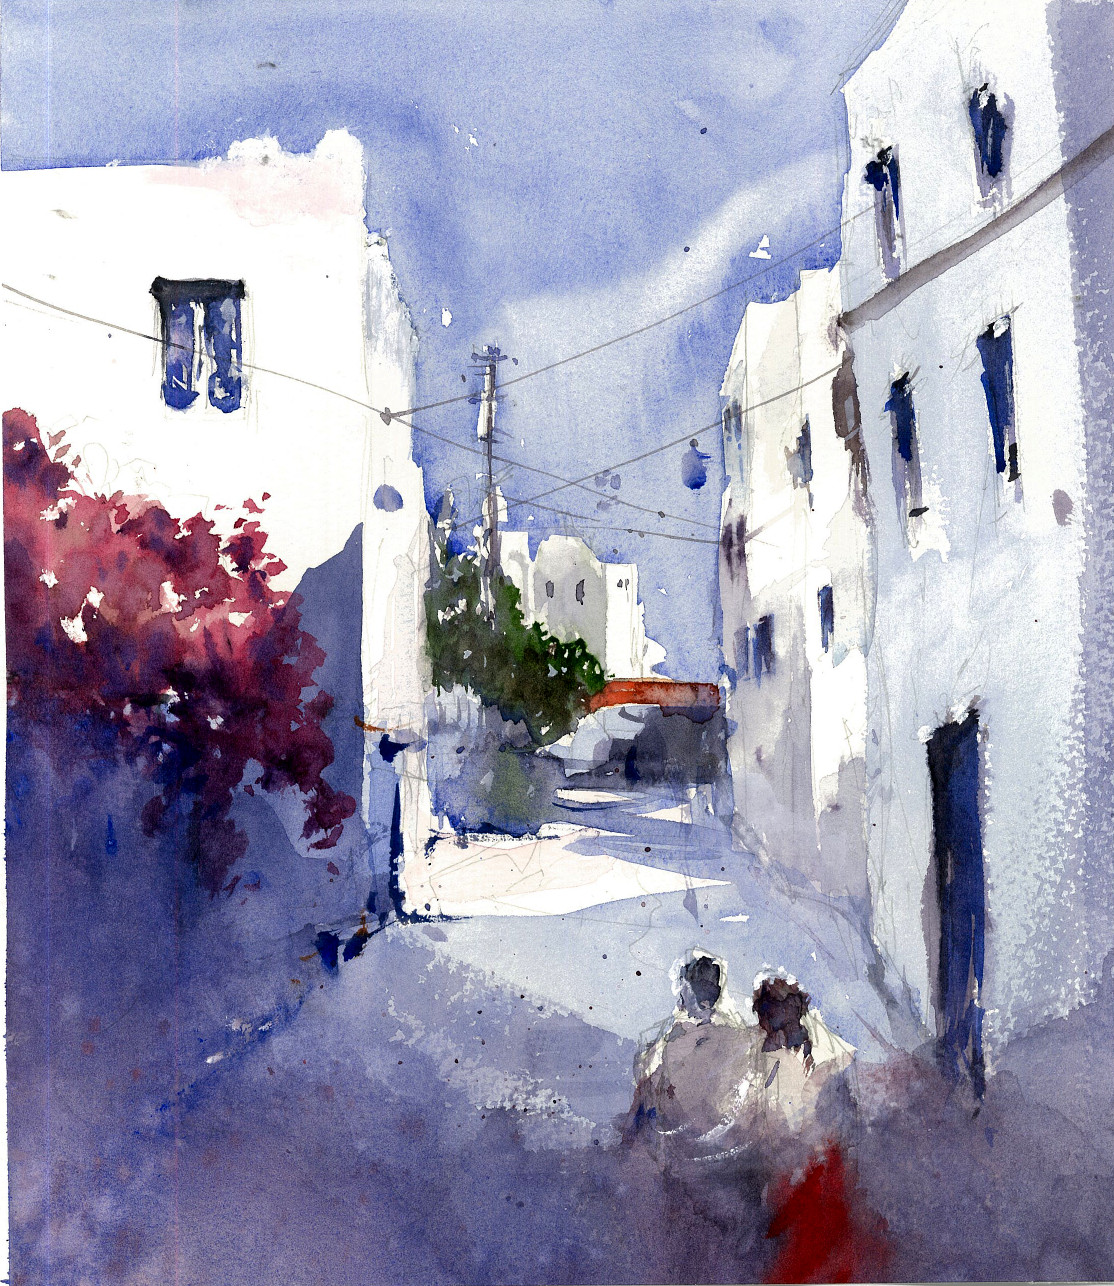 The Lovers of the Bodrum artwork by Baha Boru - art listed for sale on Artplode